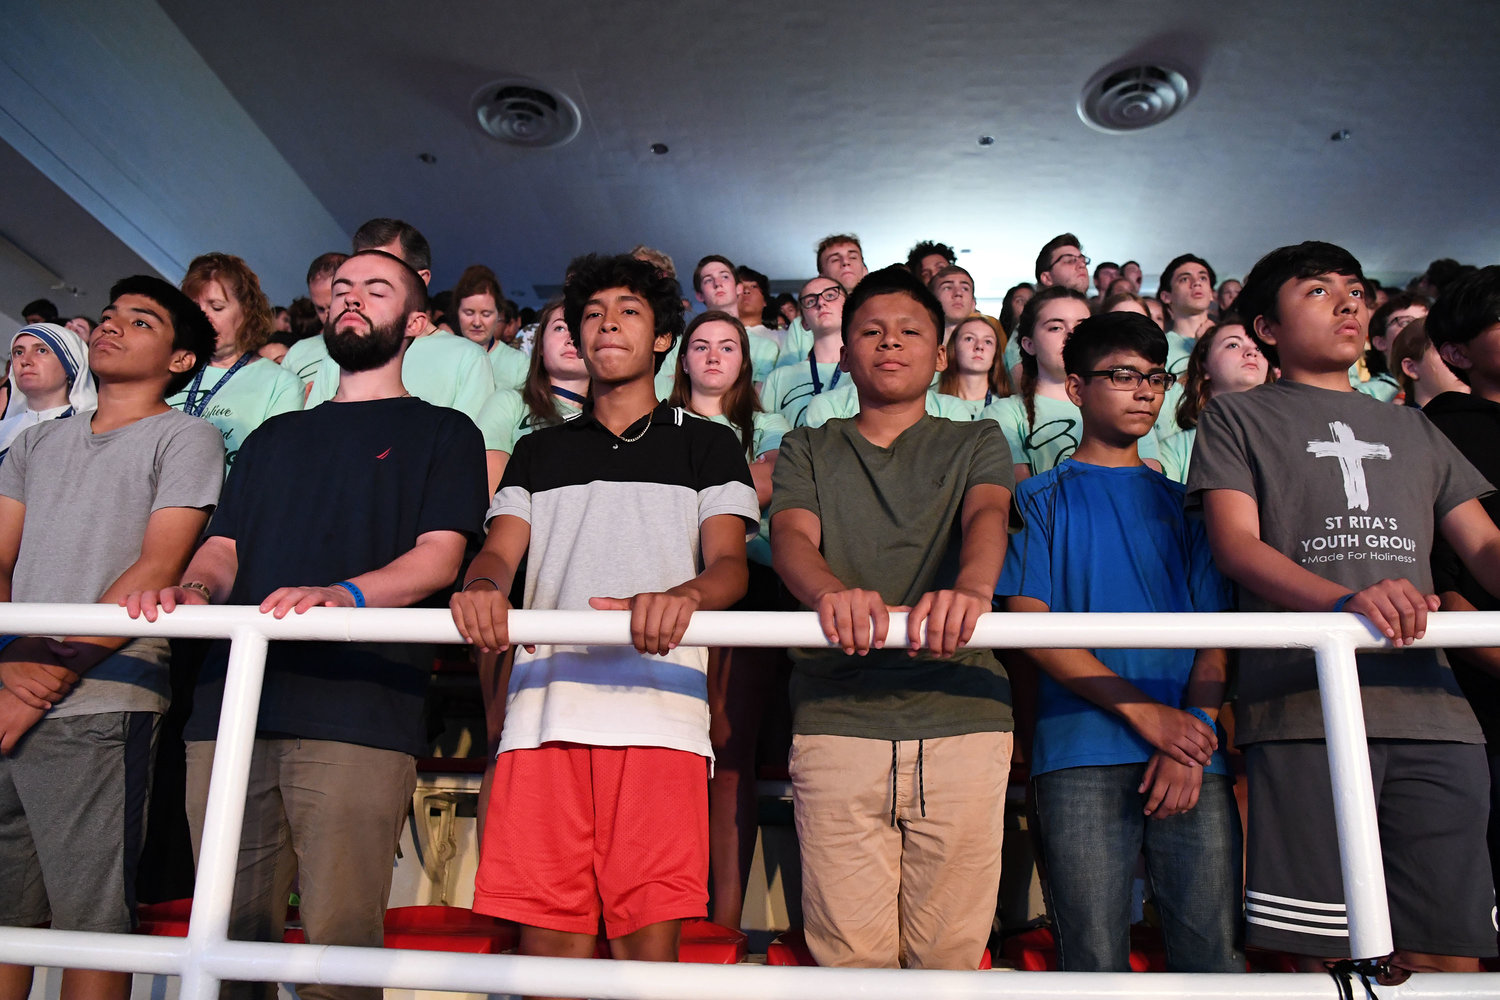 Teens from St. Rita of Cascia and St. Pius V parish in the Bronx attend the Mass Cardinal Dolan celebrated July 20 at Steubenville NYC at Carnesecca Arena on the campus of St. John's University in Queens.